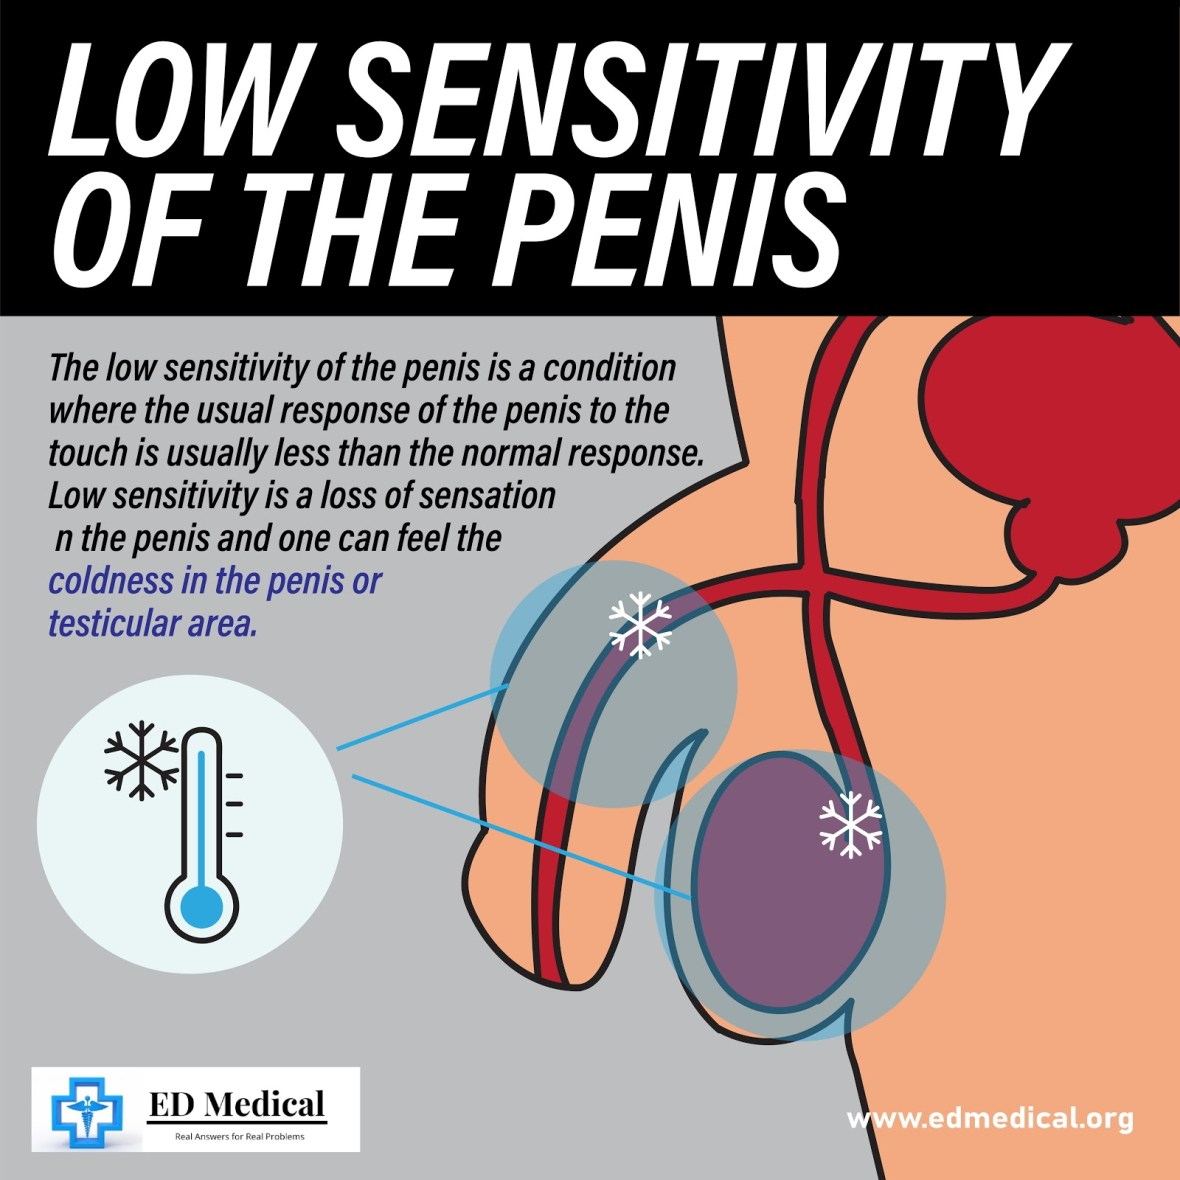 Low Sensitivity of the penis